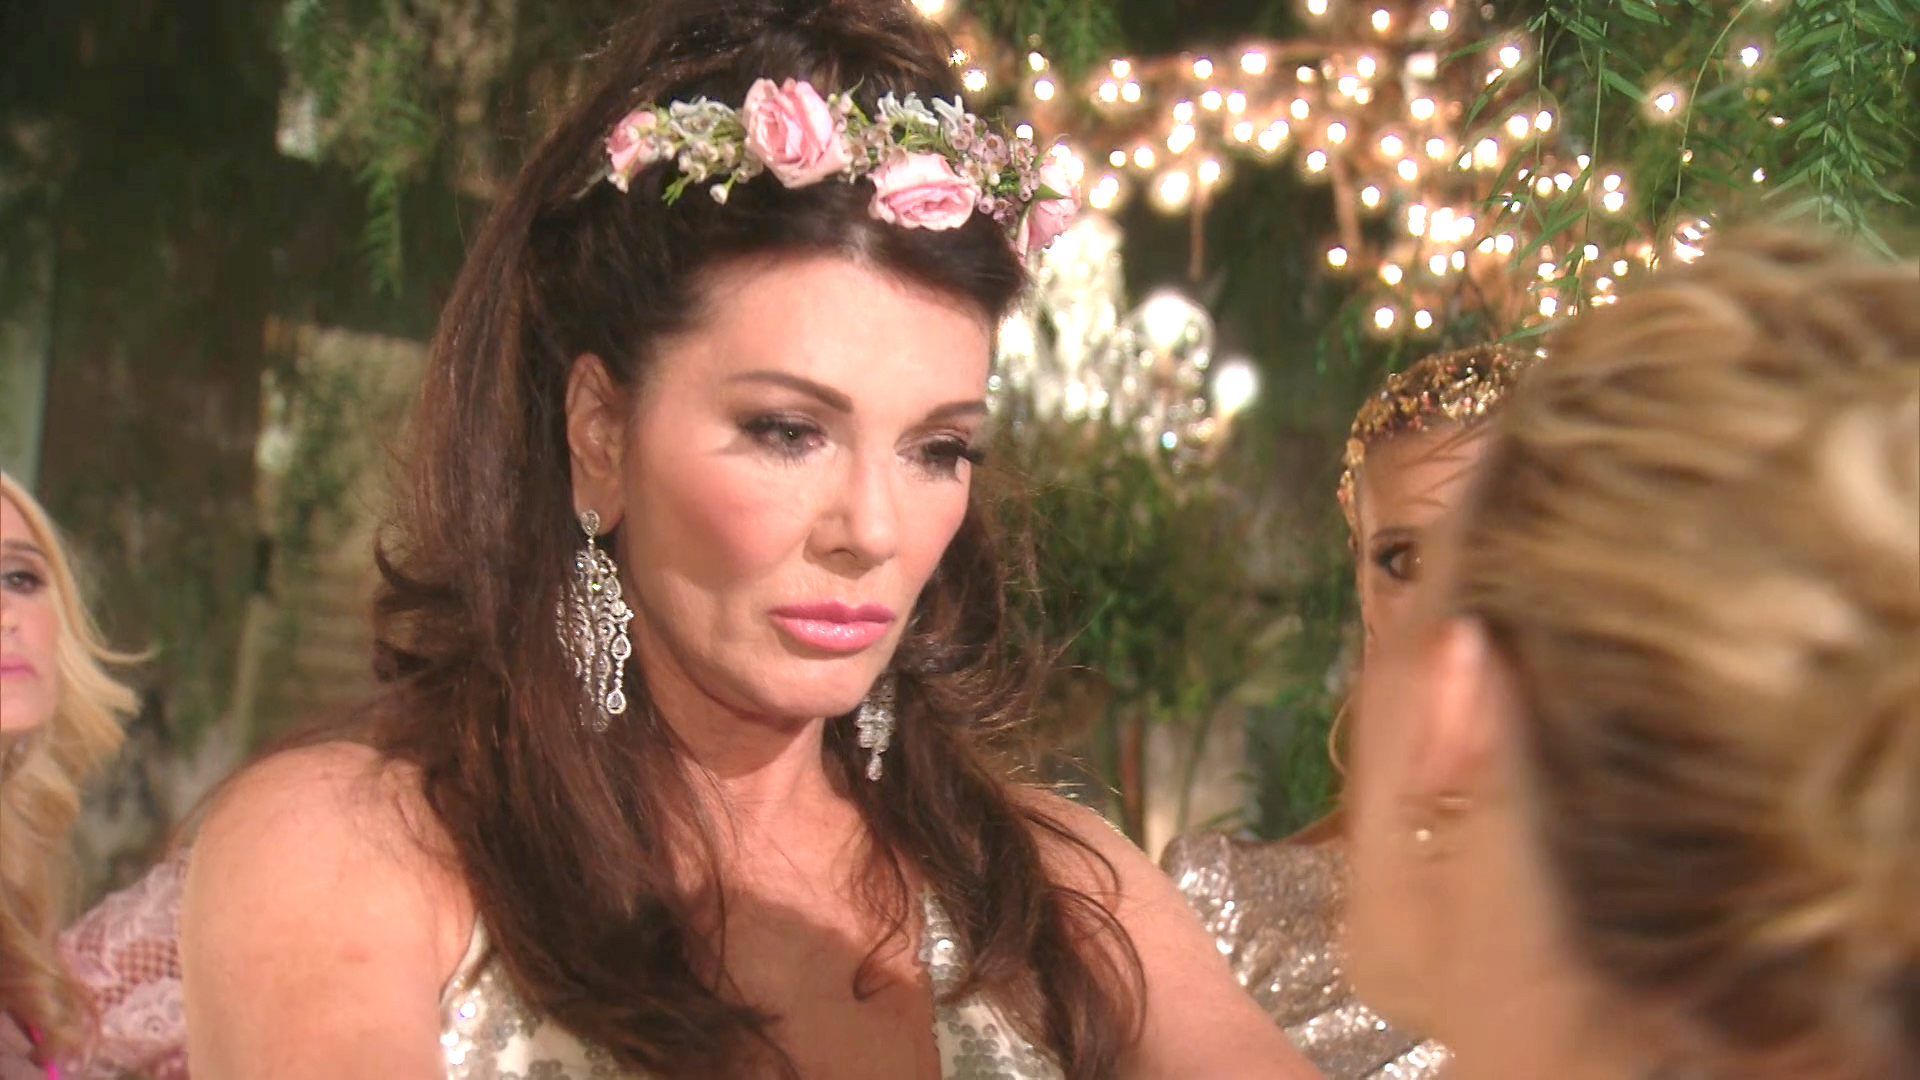 It's All Going According to Lisa Vanderpump's Plan...